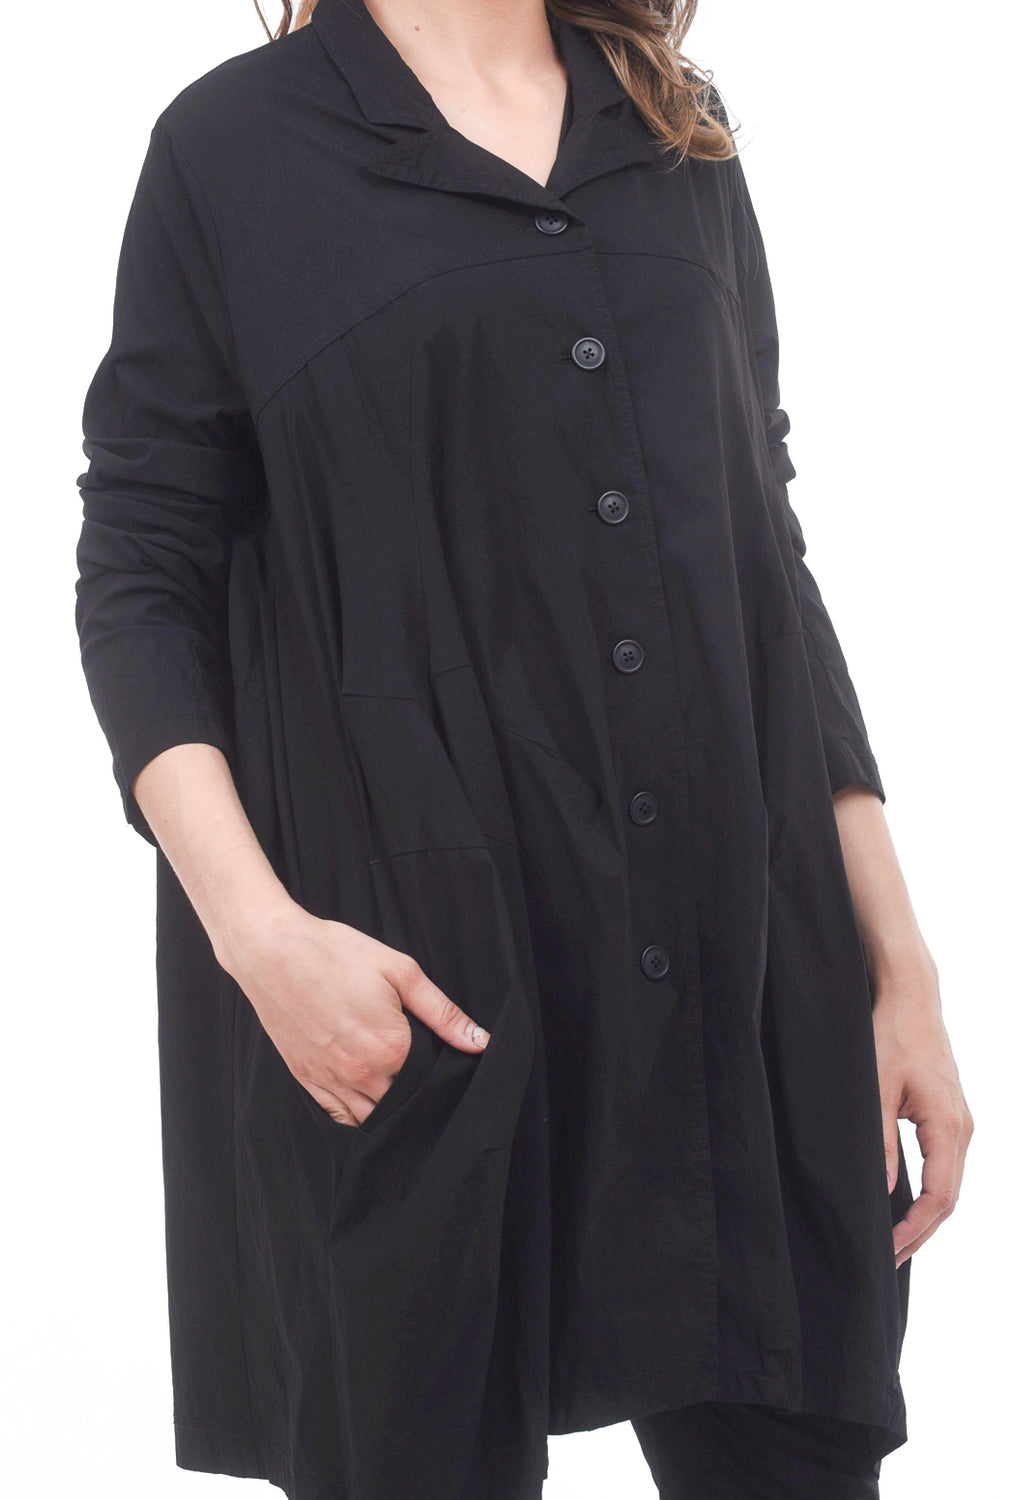 Rundholz Black Label Stretch Twill Yoked Coat, Black